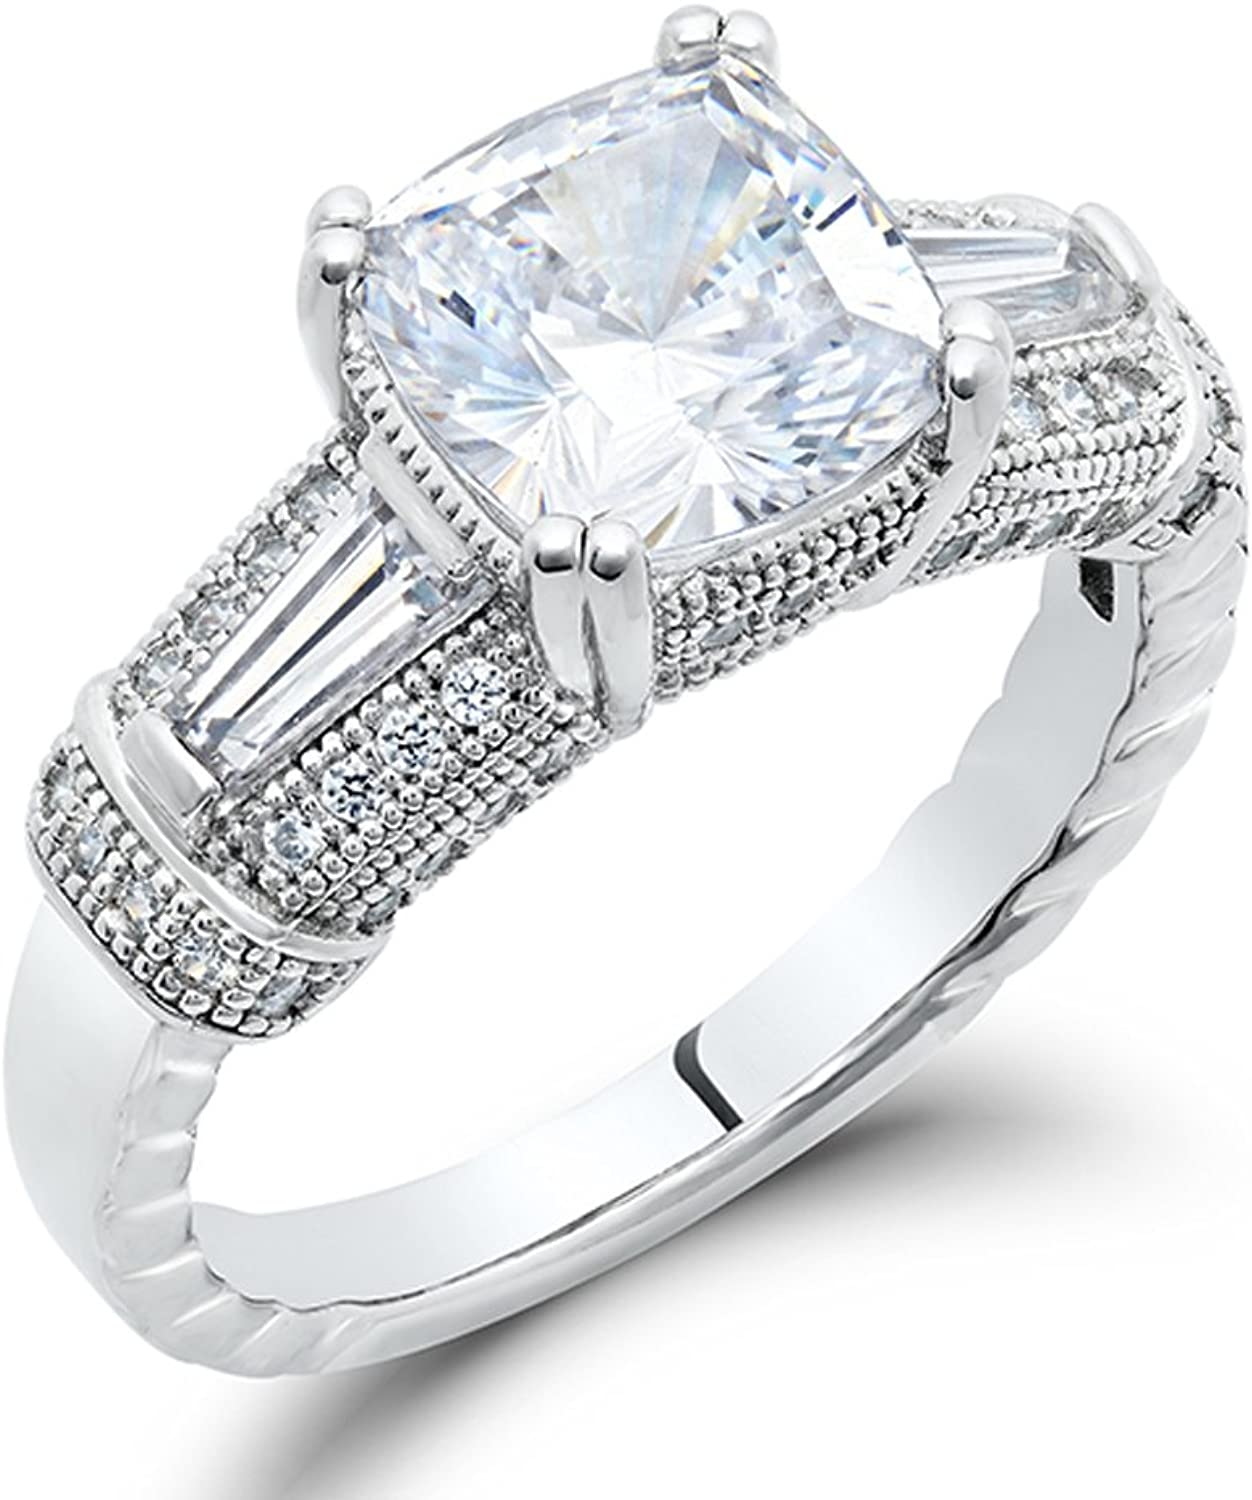 Cushion Cut Ladies Engagement Signity CZ Ring Sterling Silver (8)